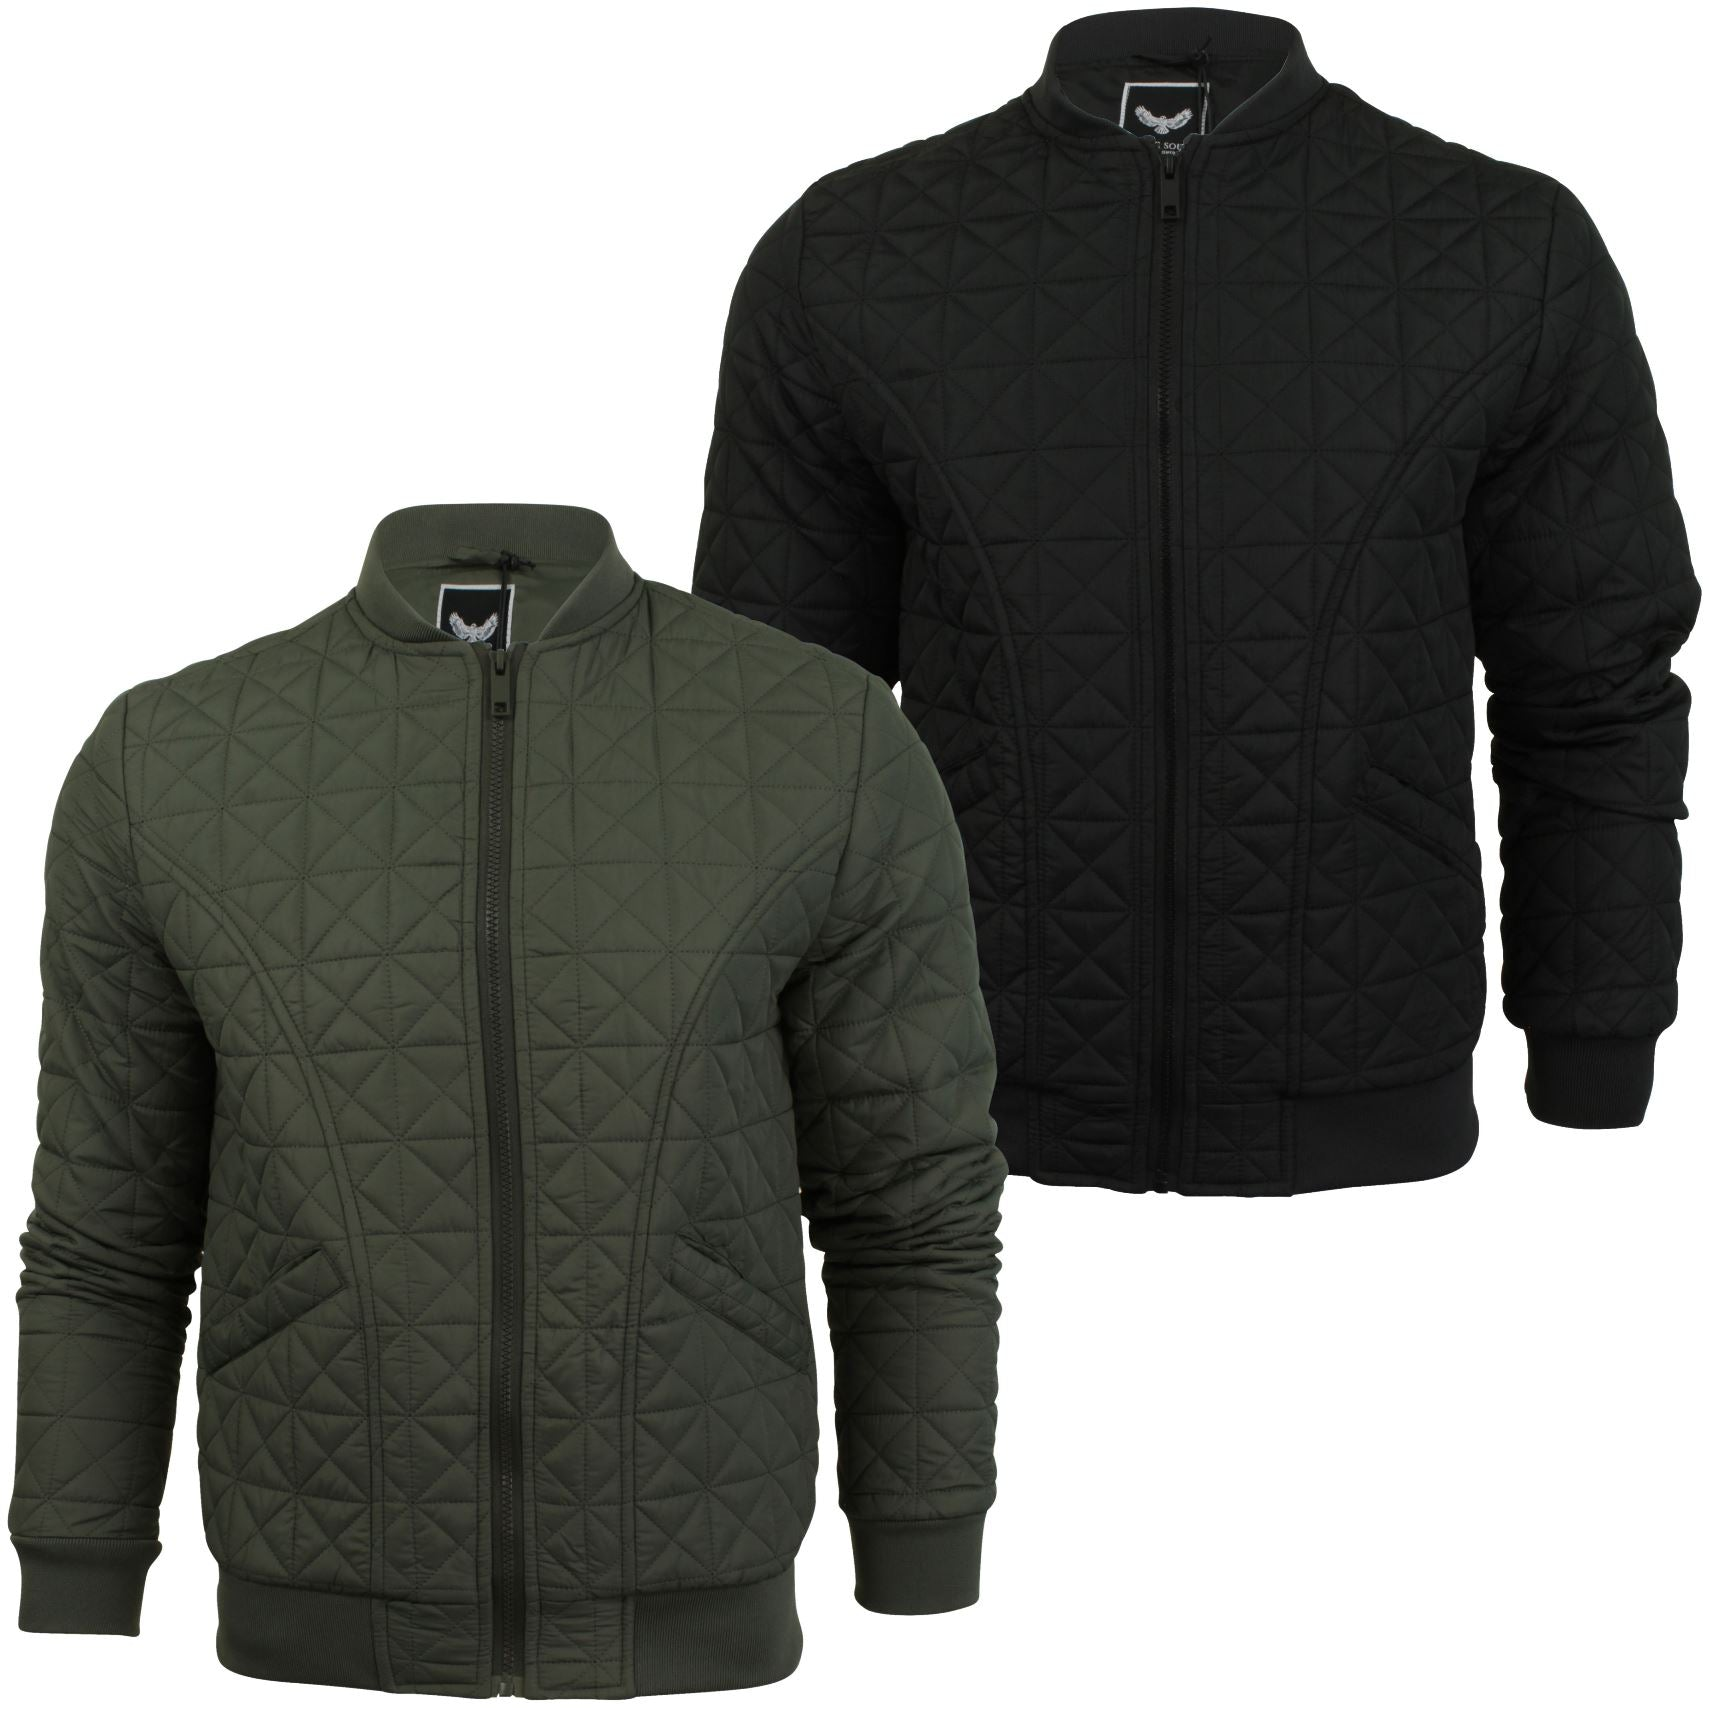 Mens Quilted Bomber Jacket by Brave Soul 'Bryan'-Main Image